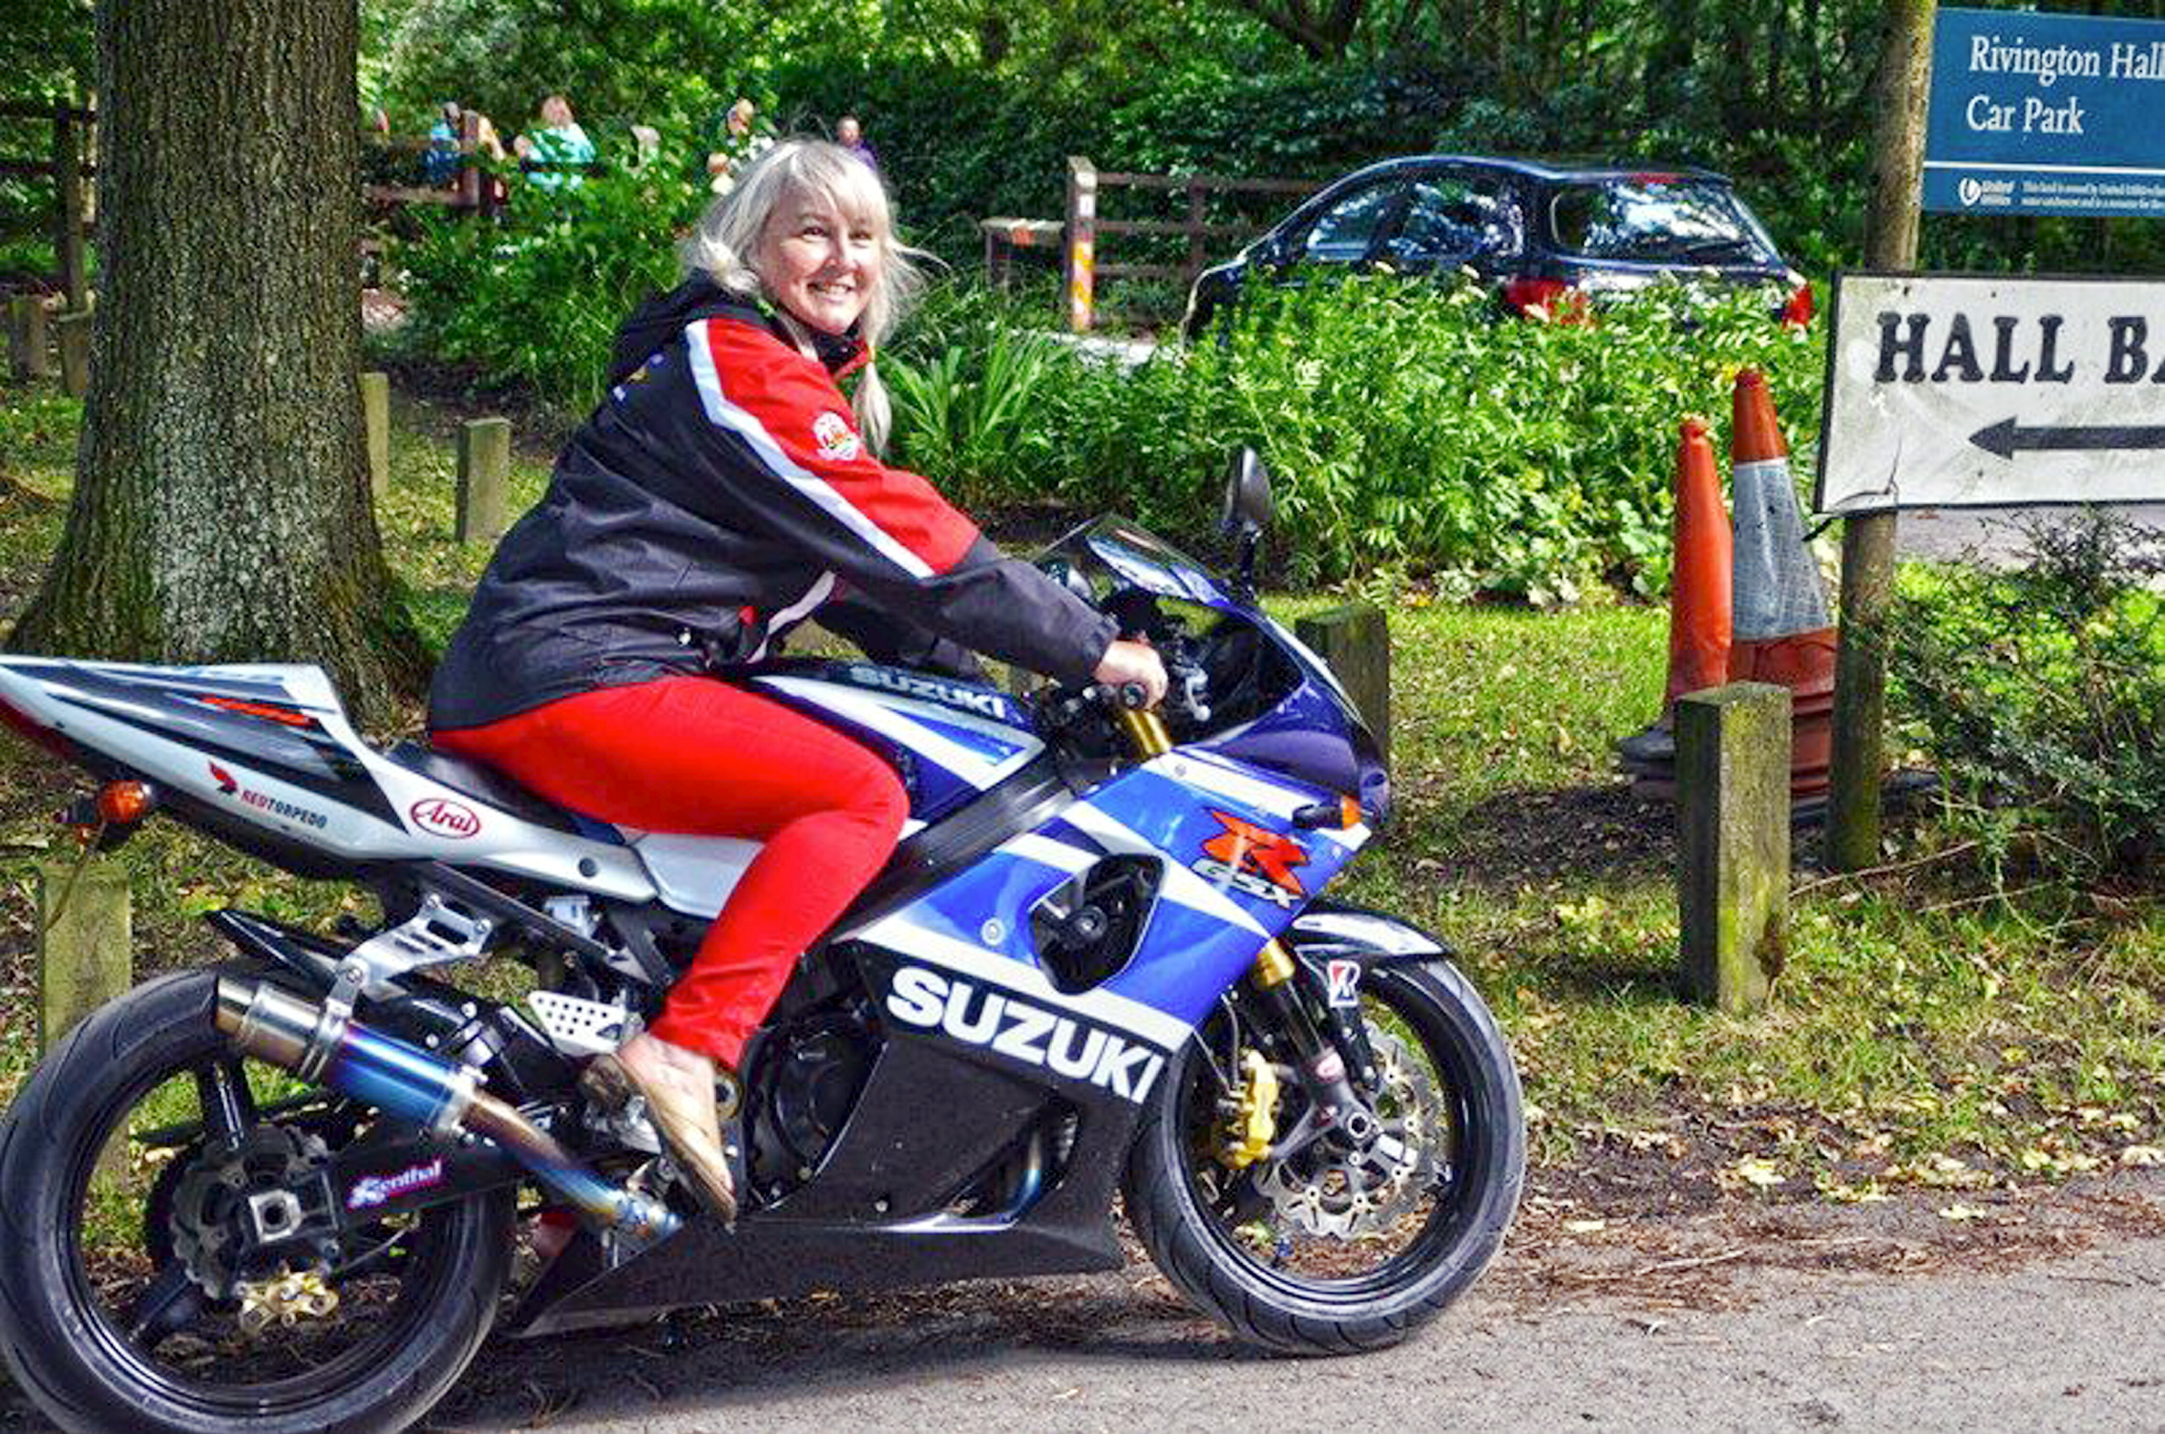 Susan Rigby rides into Rivington Barn on a Suzuki GSXR